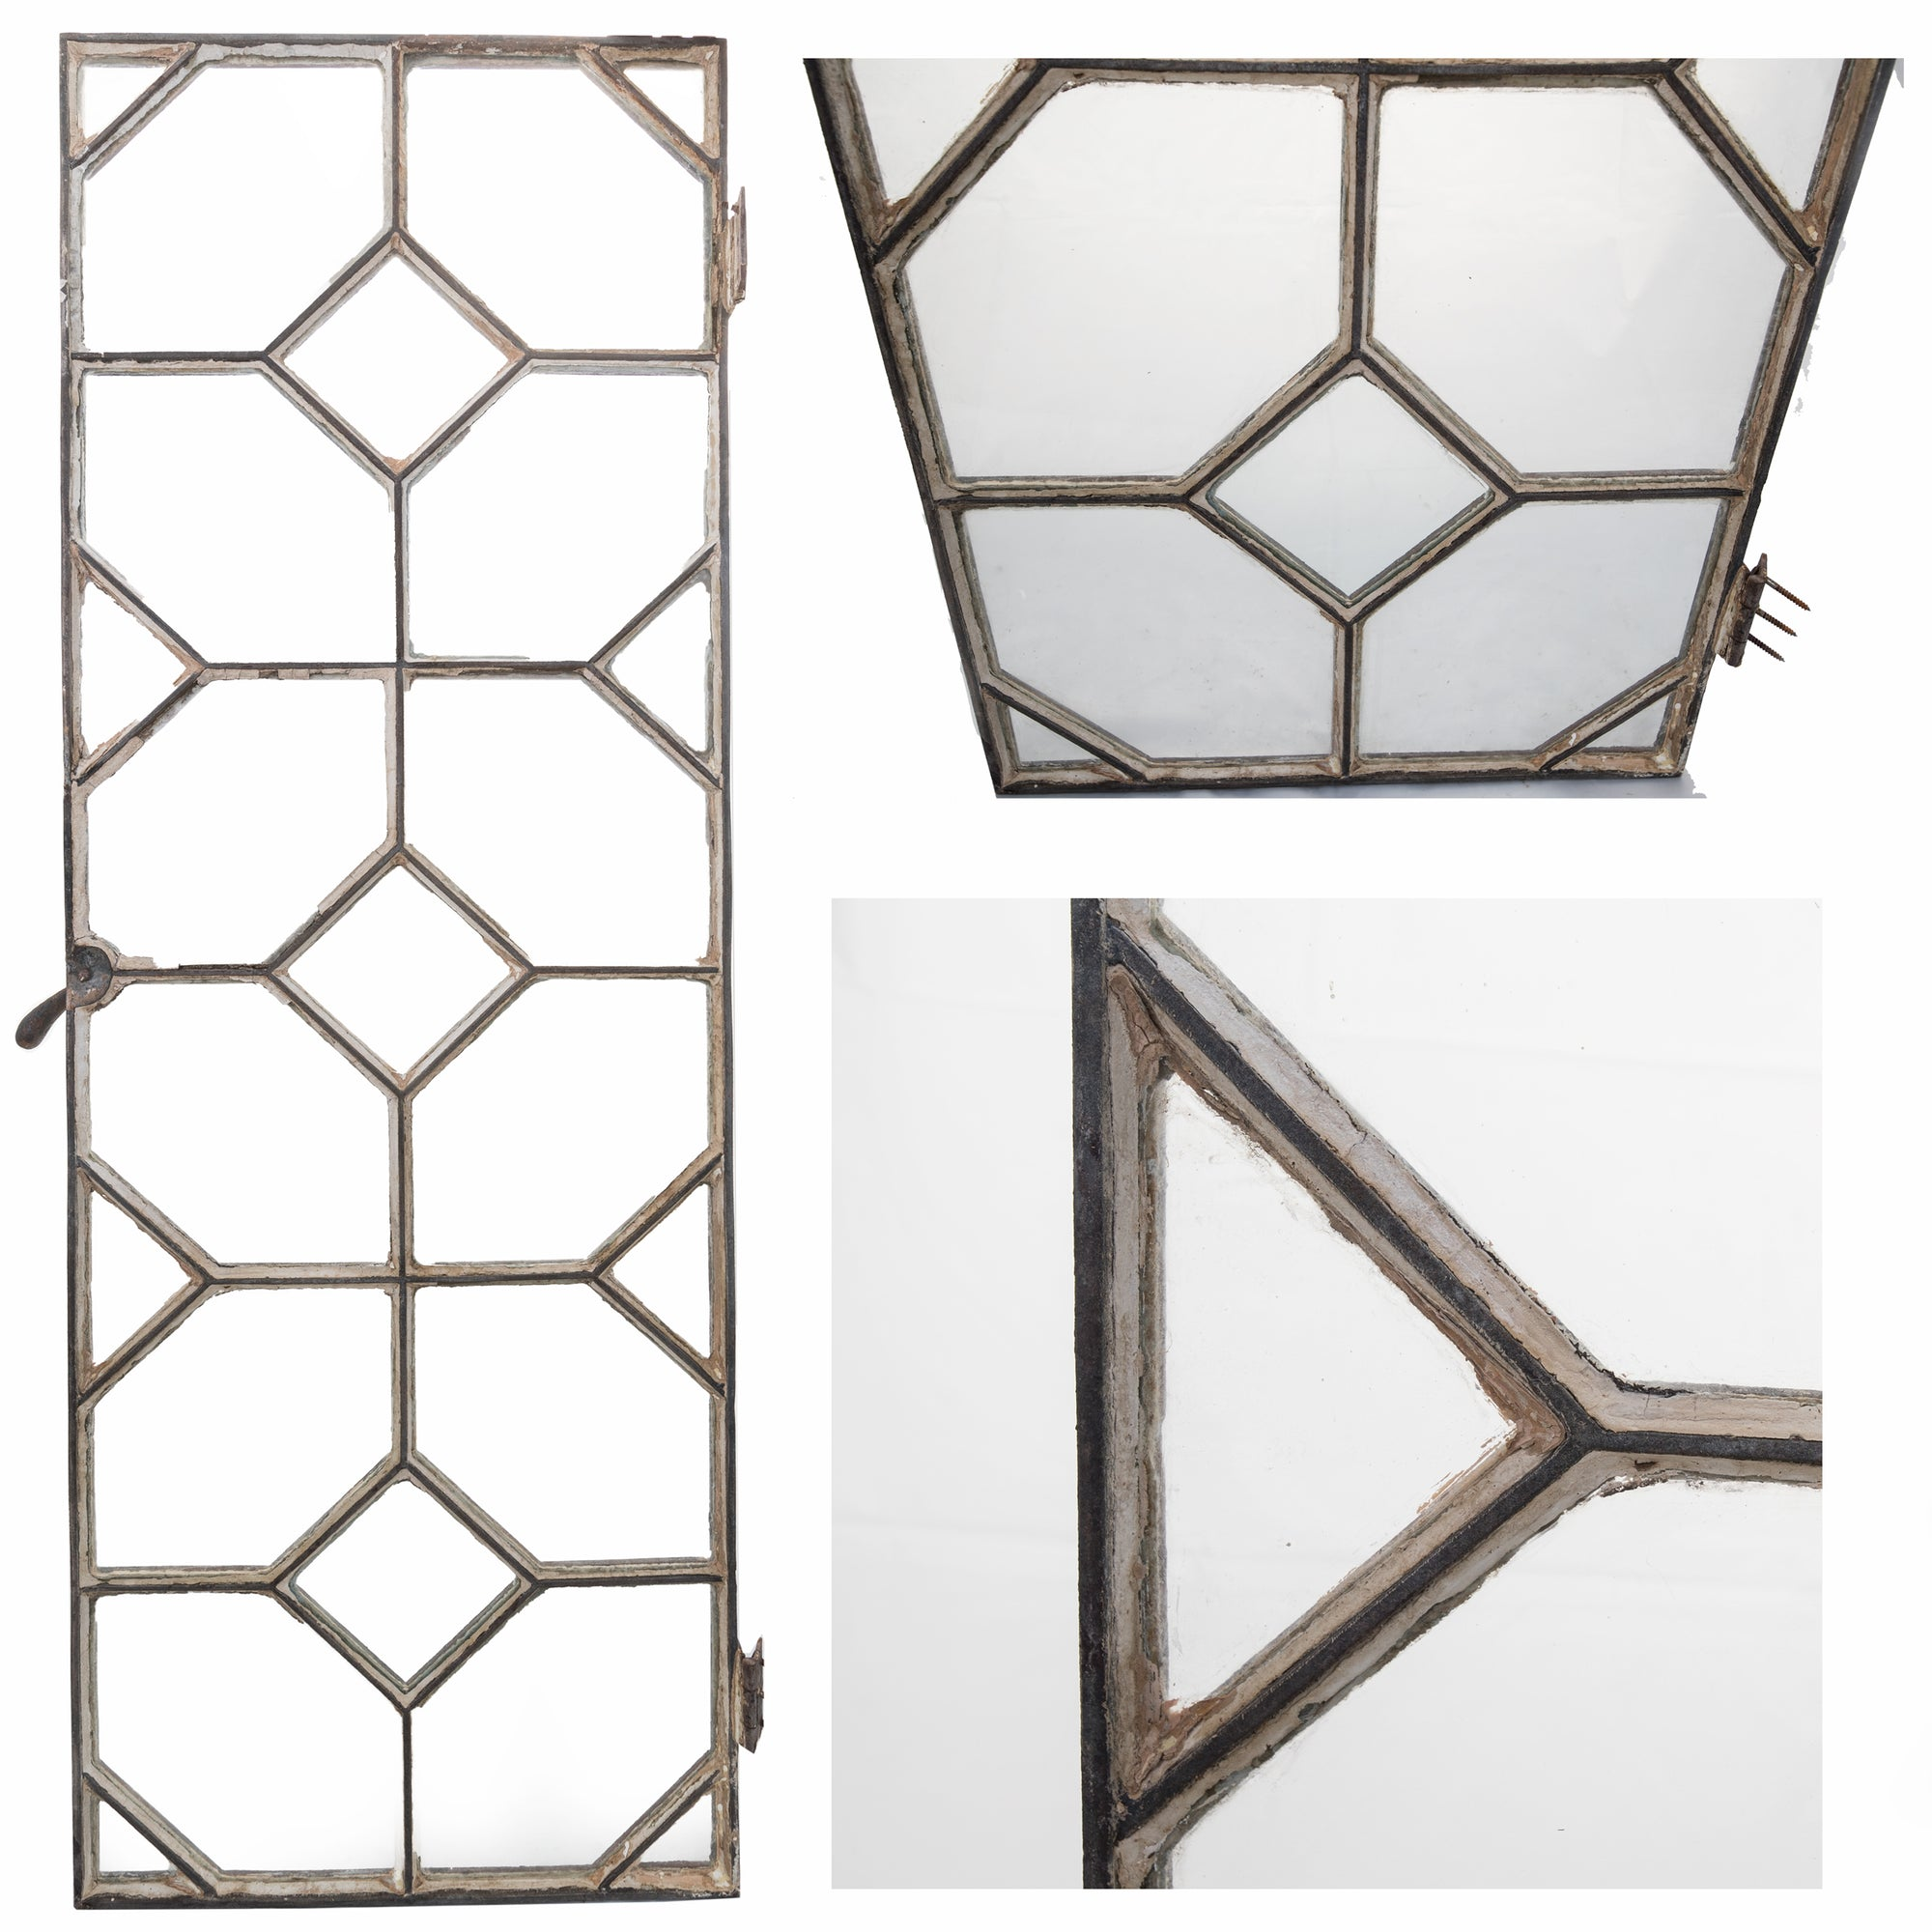 Reclaimed Late 19th Century Crittall Style Honeycomb Window Panels | The Architectural Forum